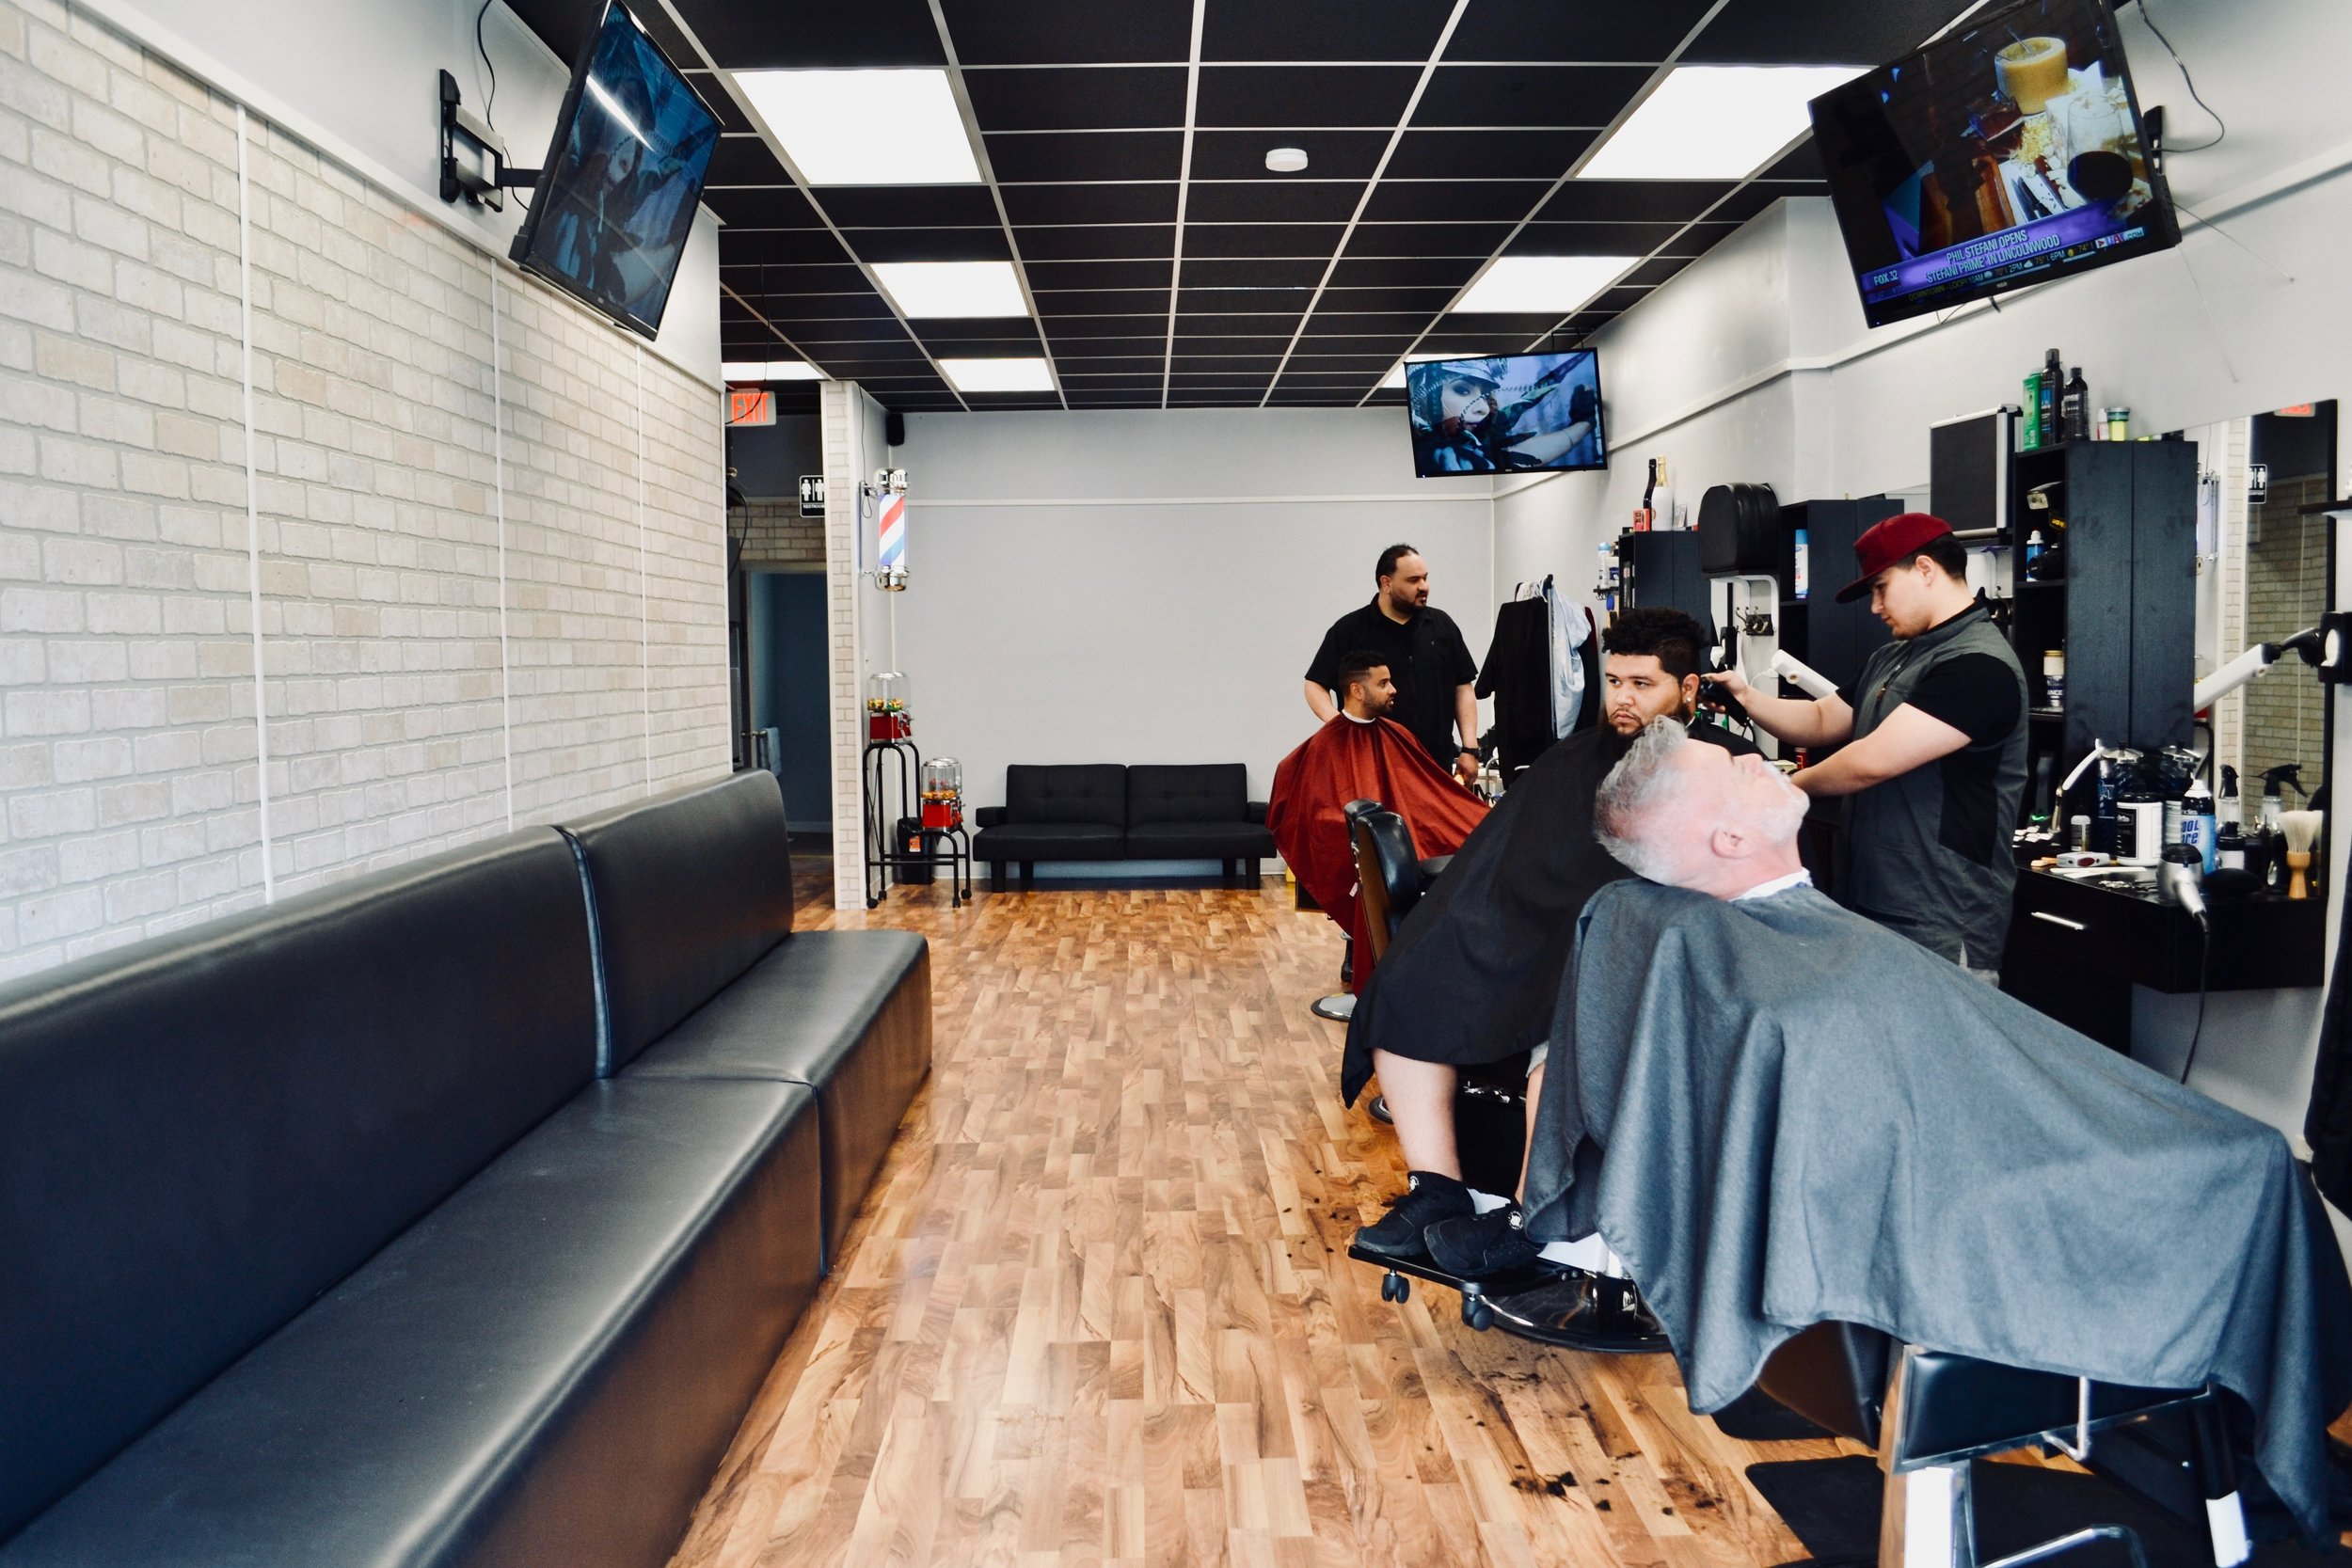 Services Tailored to You - Creation Cuts Barbershop is located near the intersection of Grand and Oak Park in Chicago. This shop caters to men and kids looking for that classic men's cut, custom shave, or the latest trends.